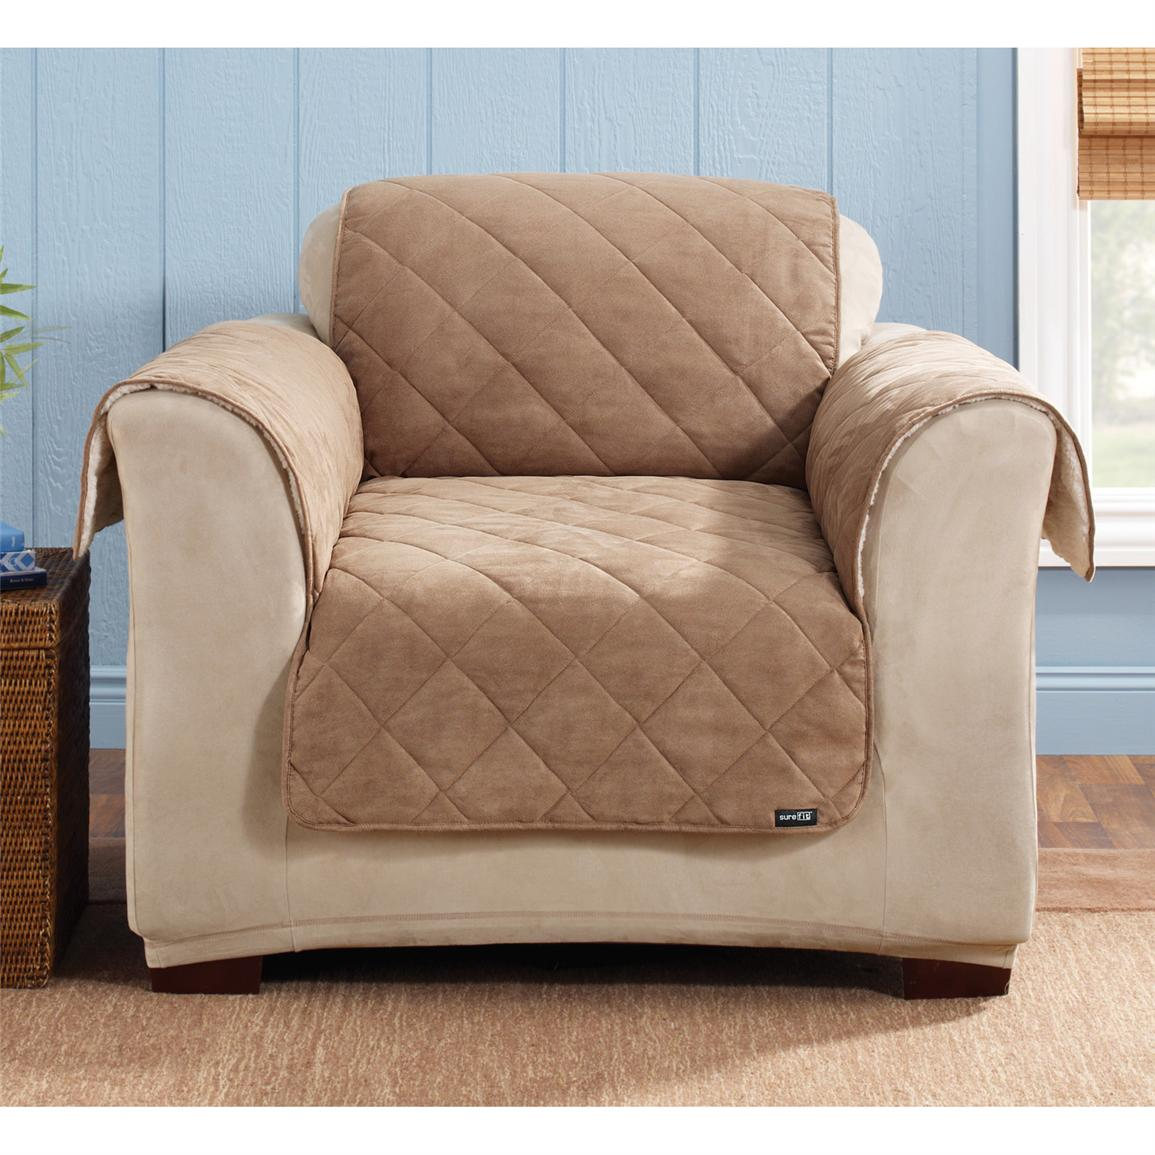 Sure Fit Reversible Suede Sherpa Chair Pet Cover 292847